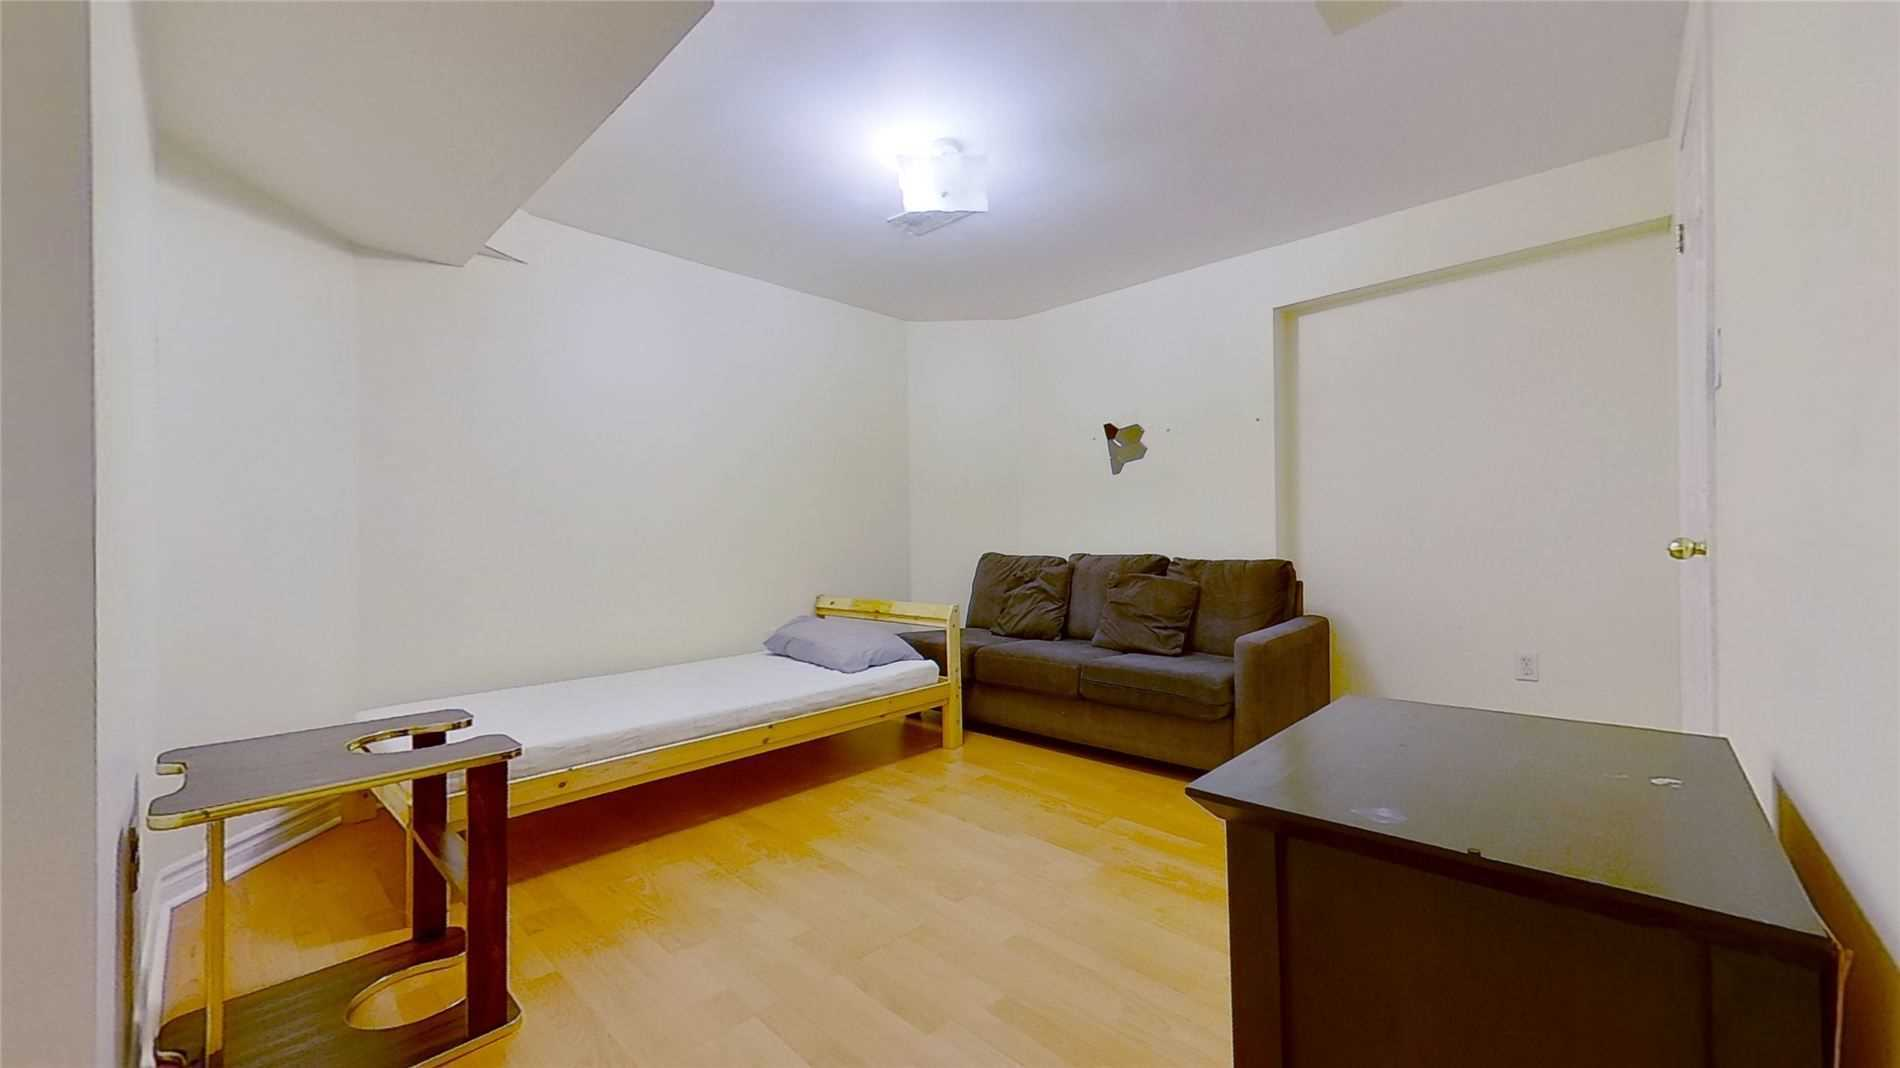 Image 4 of 16 showing inside of 2 Bedroom Detached 2-Storey for Lease at 5 Whalen Crt, Richmond Hill L4C9T5